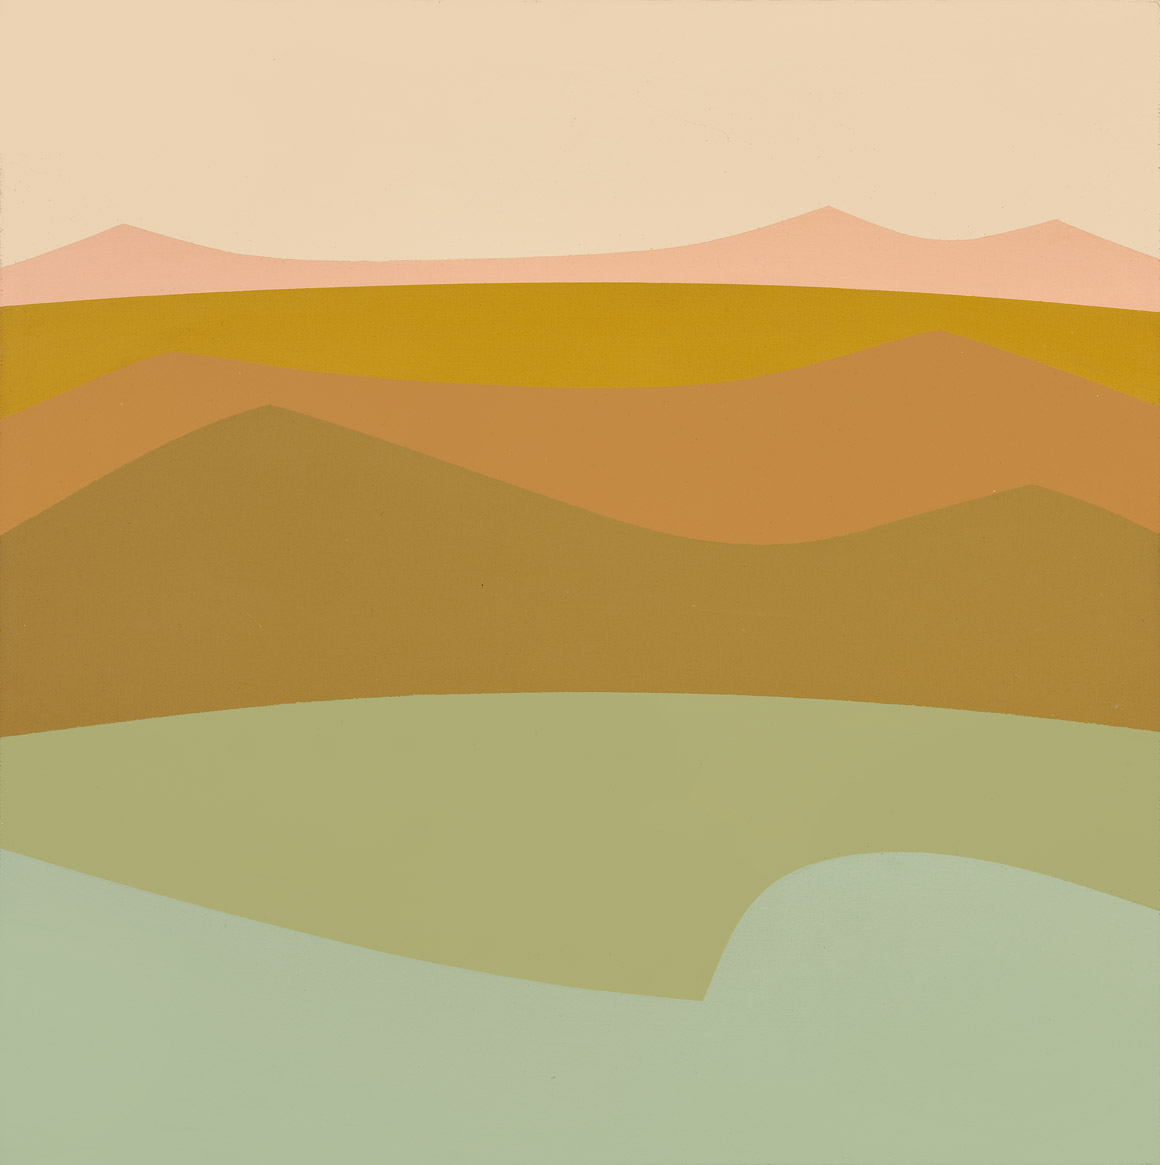 Untitled (Landscape or Mountain Lake) , 1970  acrylic on canvas 20 x 20 inches; 50.8 x 50.8 centimeters